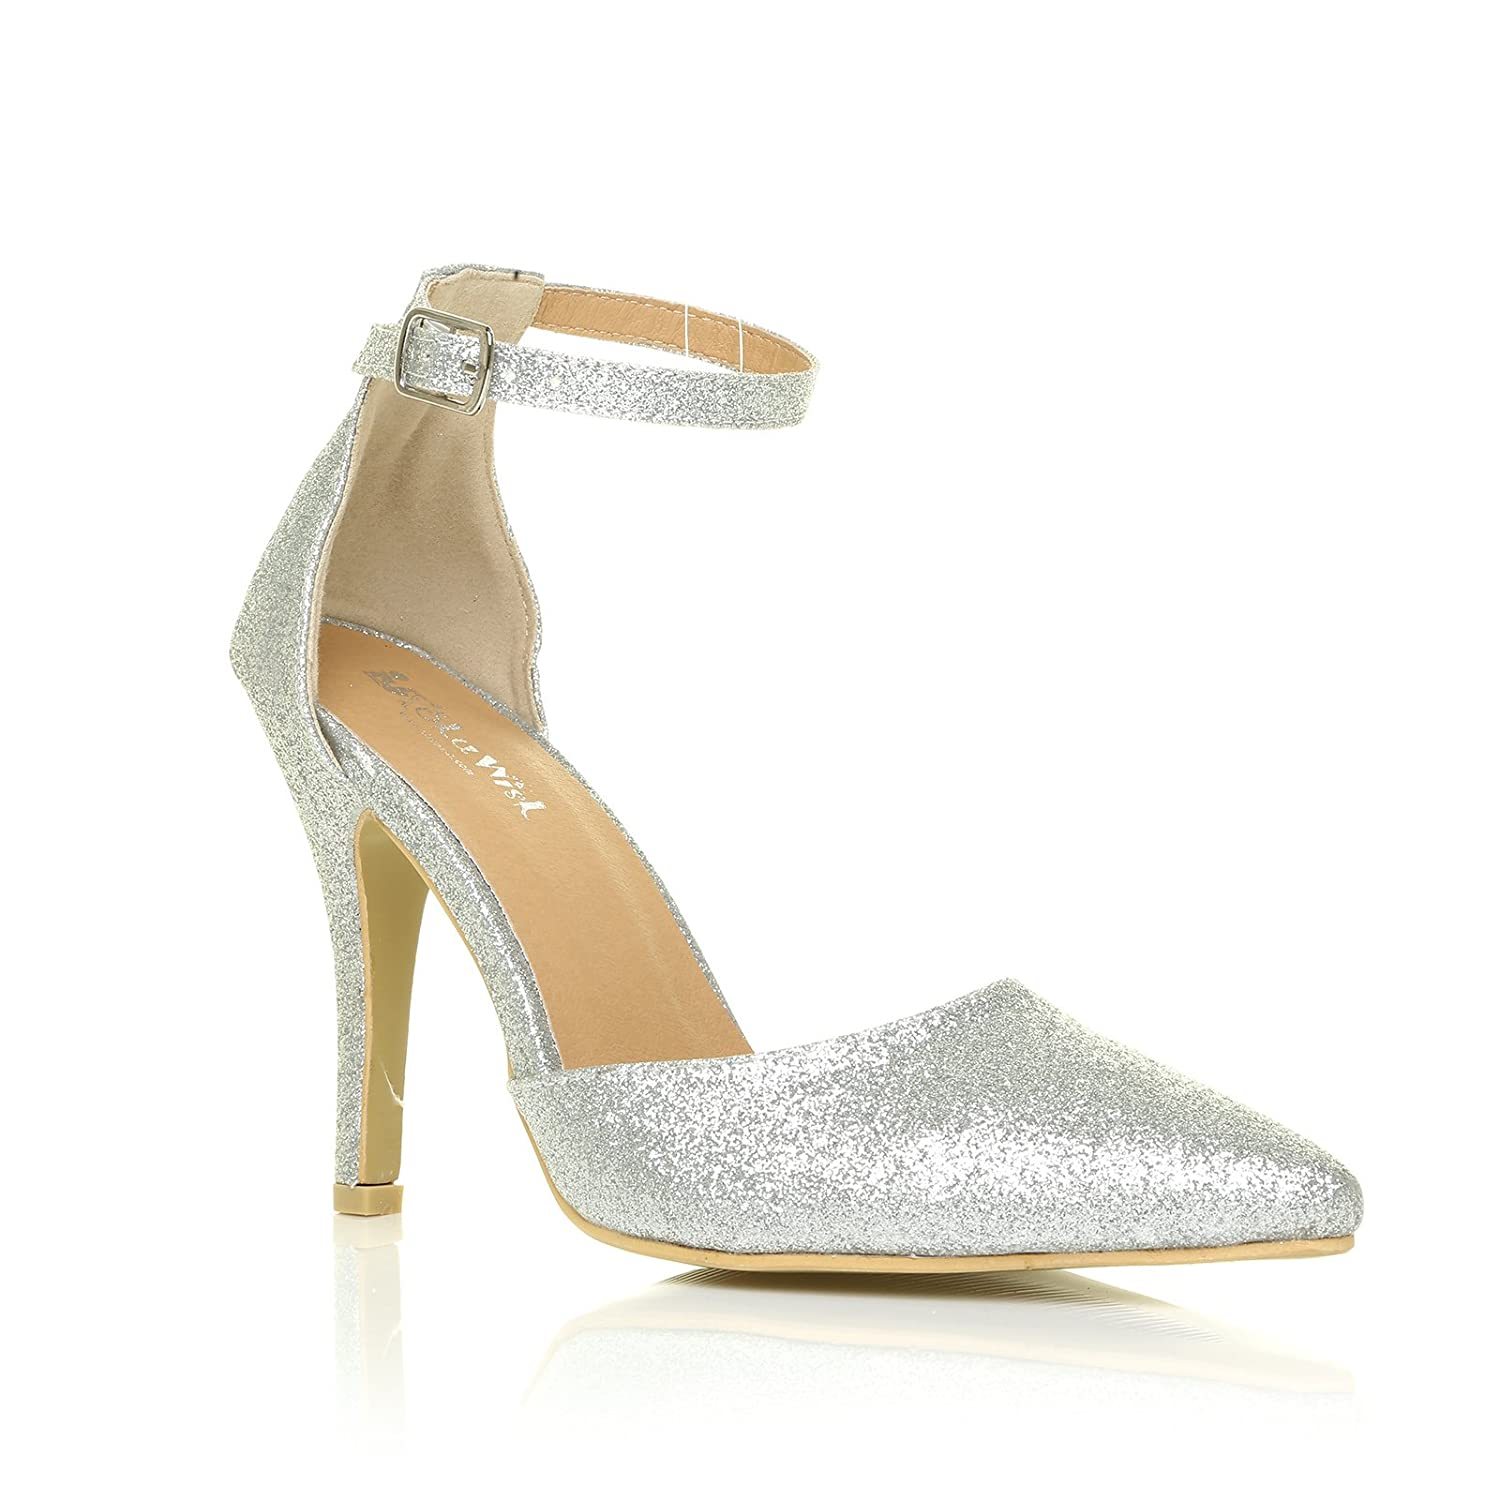 a068df0d417 New York Silver Glitter Ankle Strap Pointed High Heel Court Shoes   Amazon.co.uk  Shoes   Bags